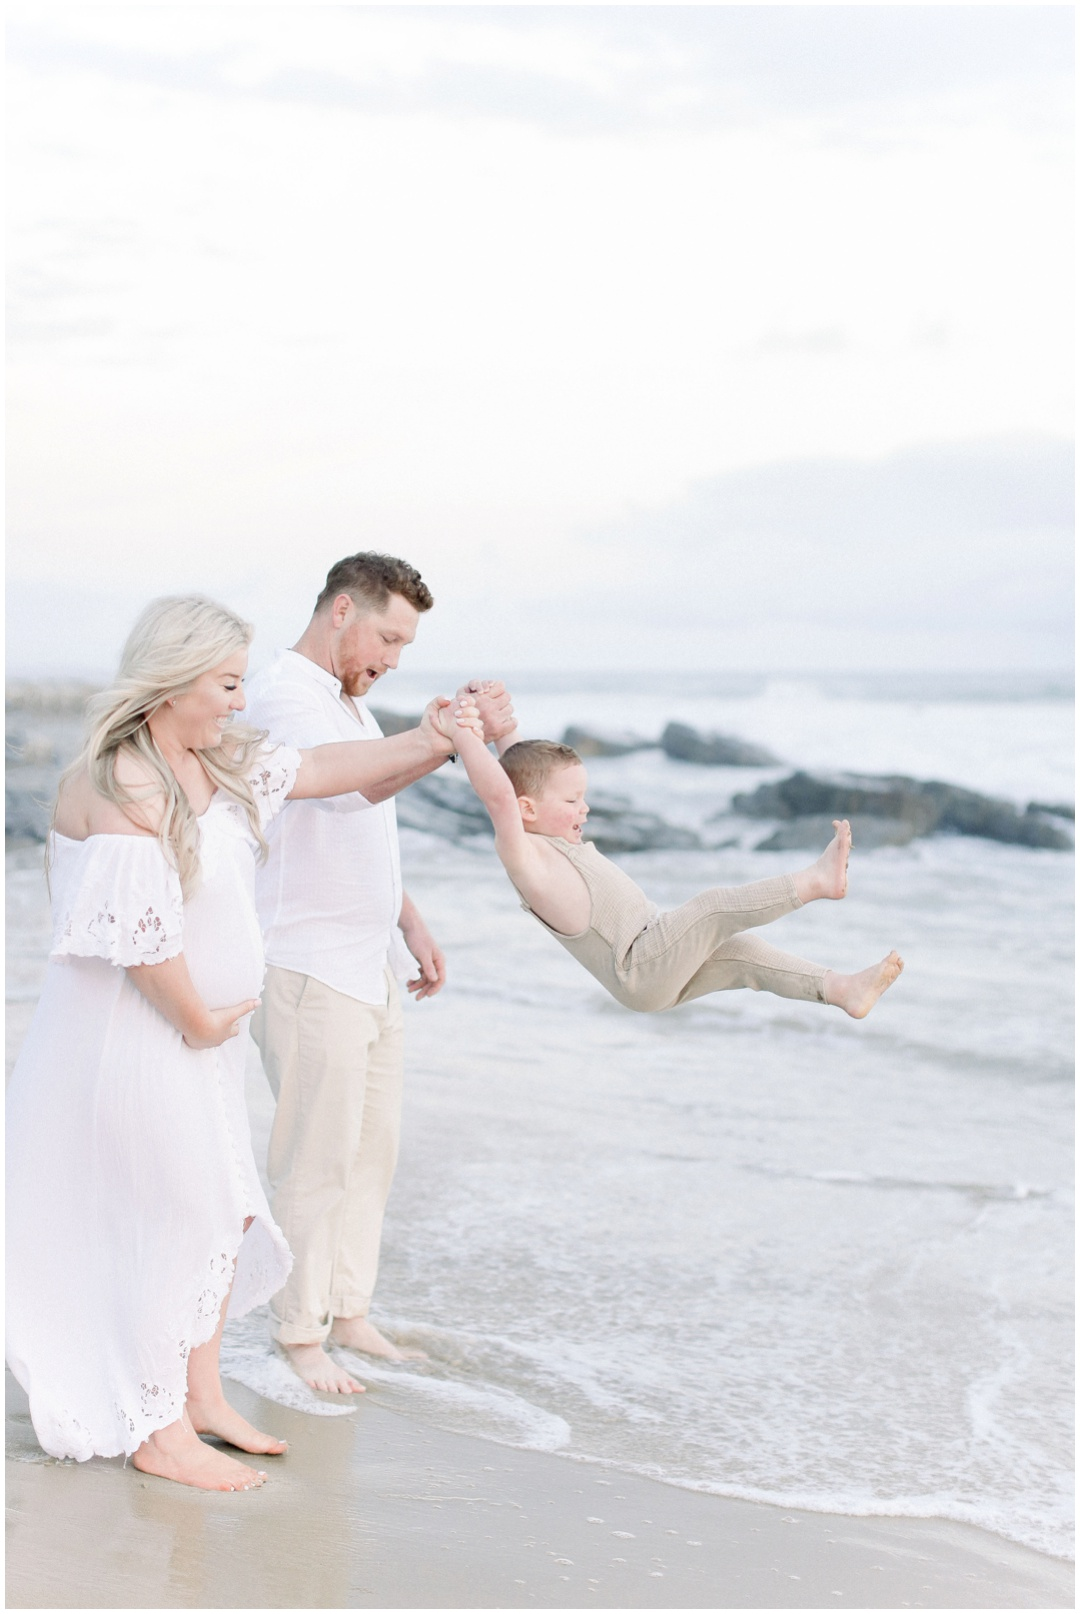 Newport_Beach_Newborn_Light_Airy_Natural_Photographer_Newport_Beach_Photographer_Orange_County_Family_Photographer_Cori_Kleckner_Photography_Newport_Beach_Photographer_Maternity_kole_calhoun56_kole_calhoun_Jennifer_Calhoun_Knox_Calhoun_3705.jpg